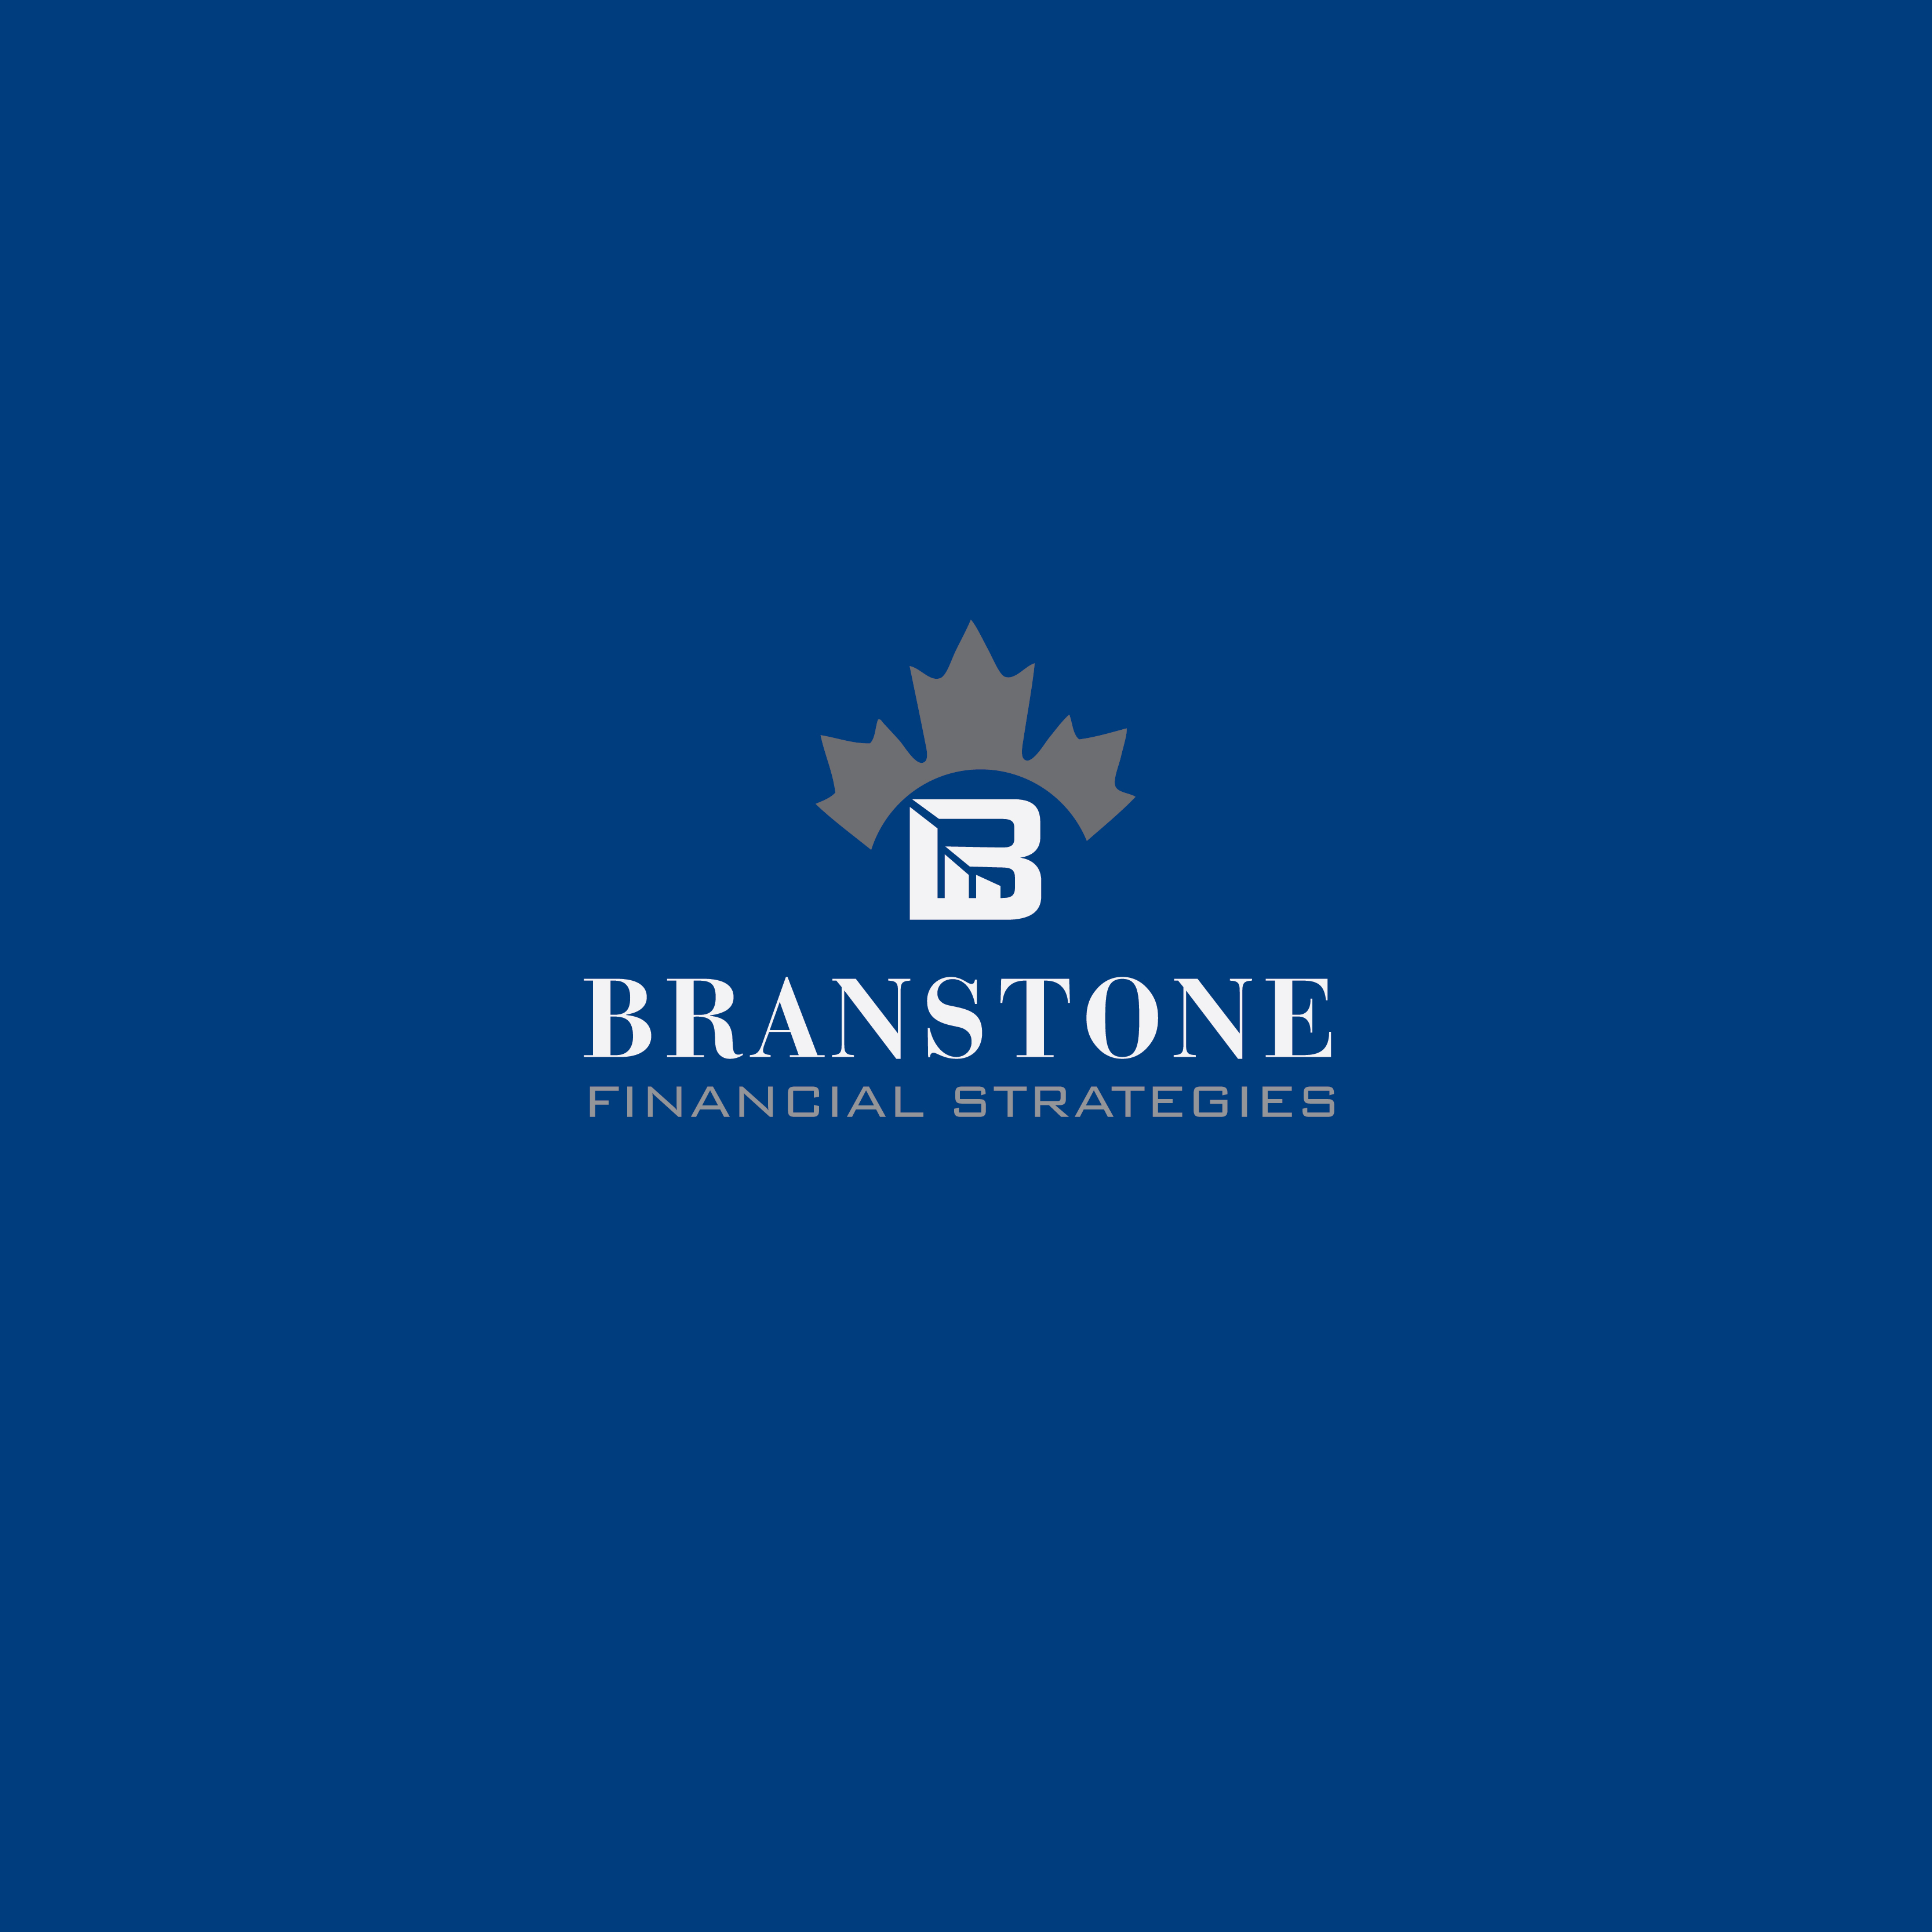 Logo Design by Naseeb CP - Entry No. 219 in the Logo Design Contest Inspiring Logo Design for Branstone Financial Strategies.